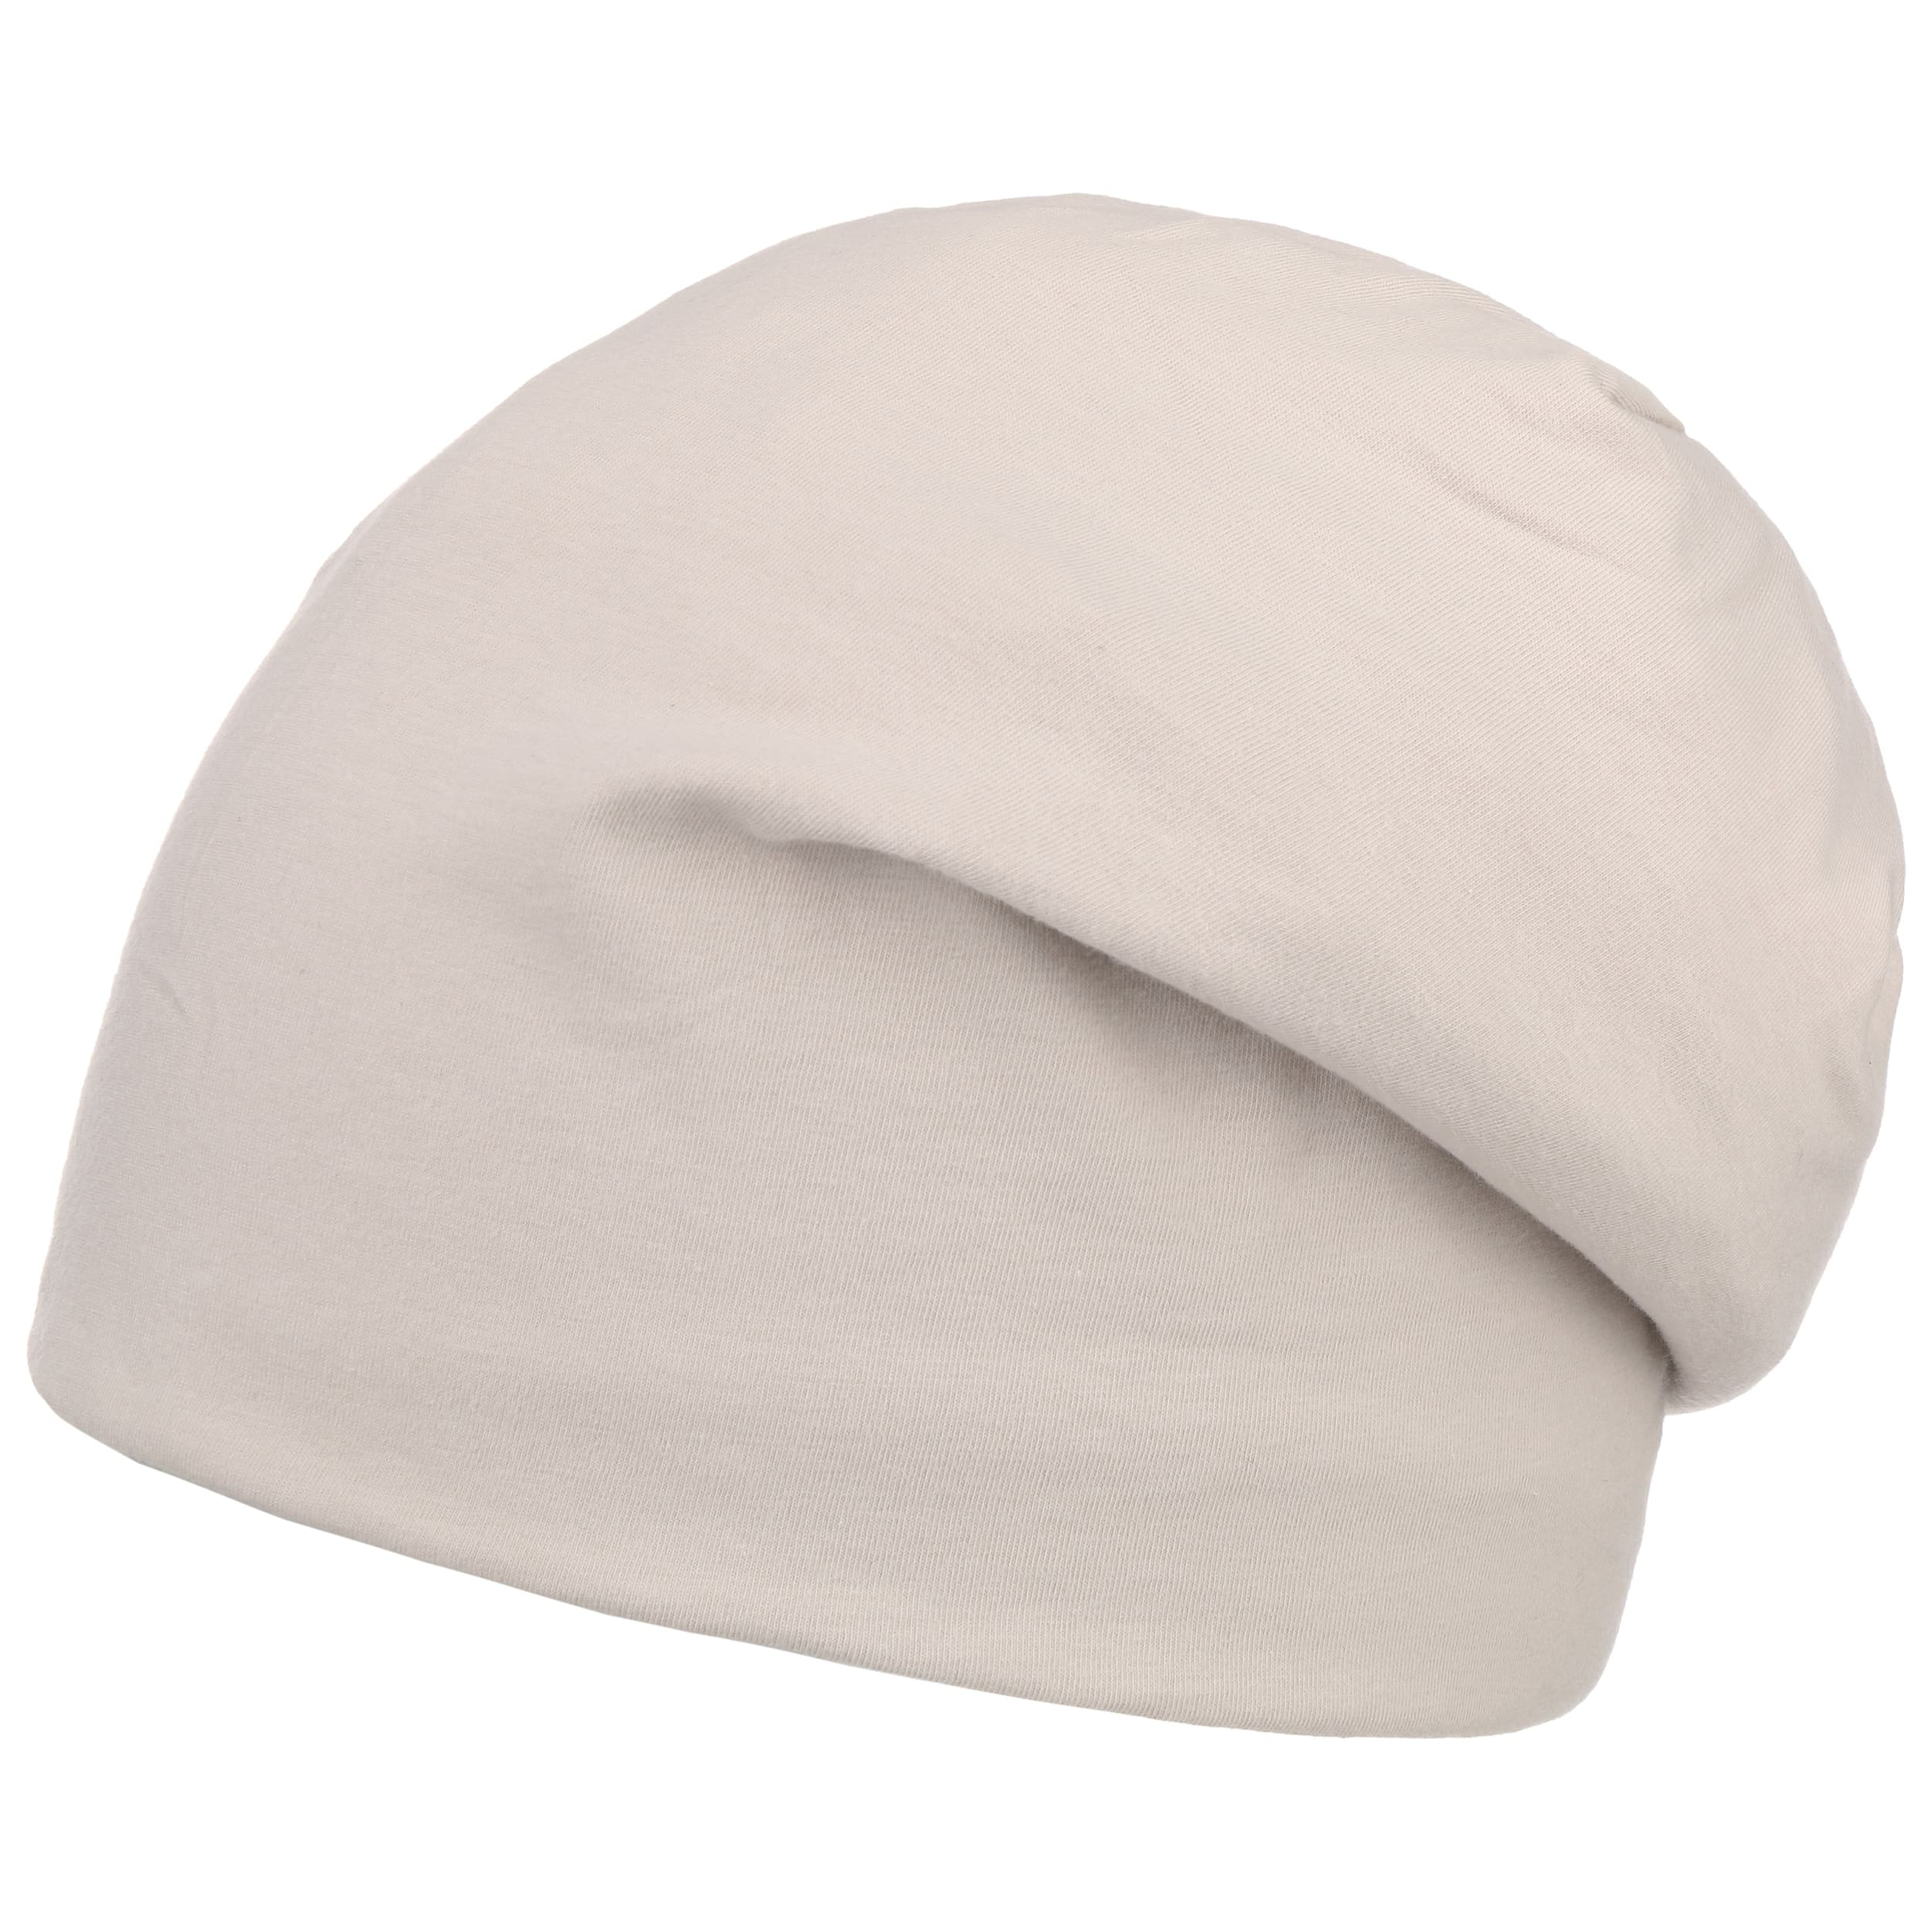 Hatshopping Pastel Oversize Jersey Knit Hat Women Men Summer hats long beanie